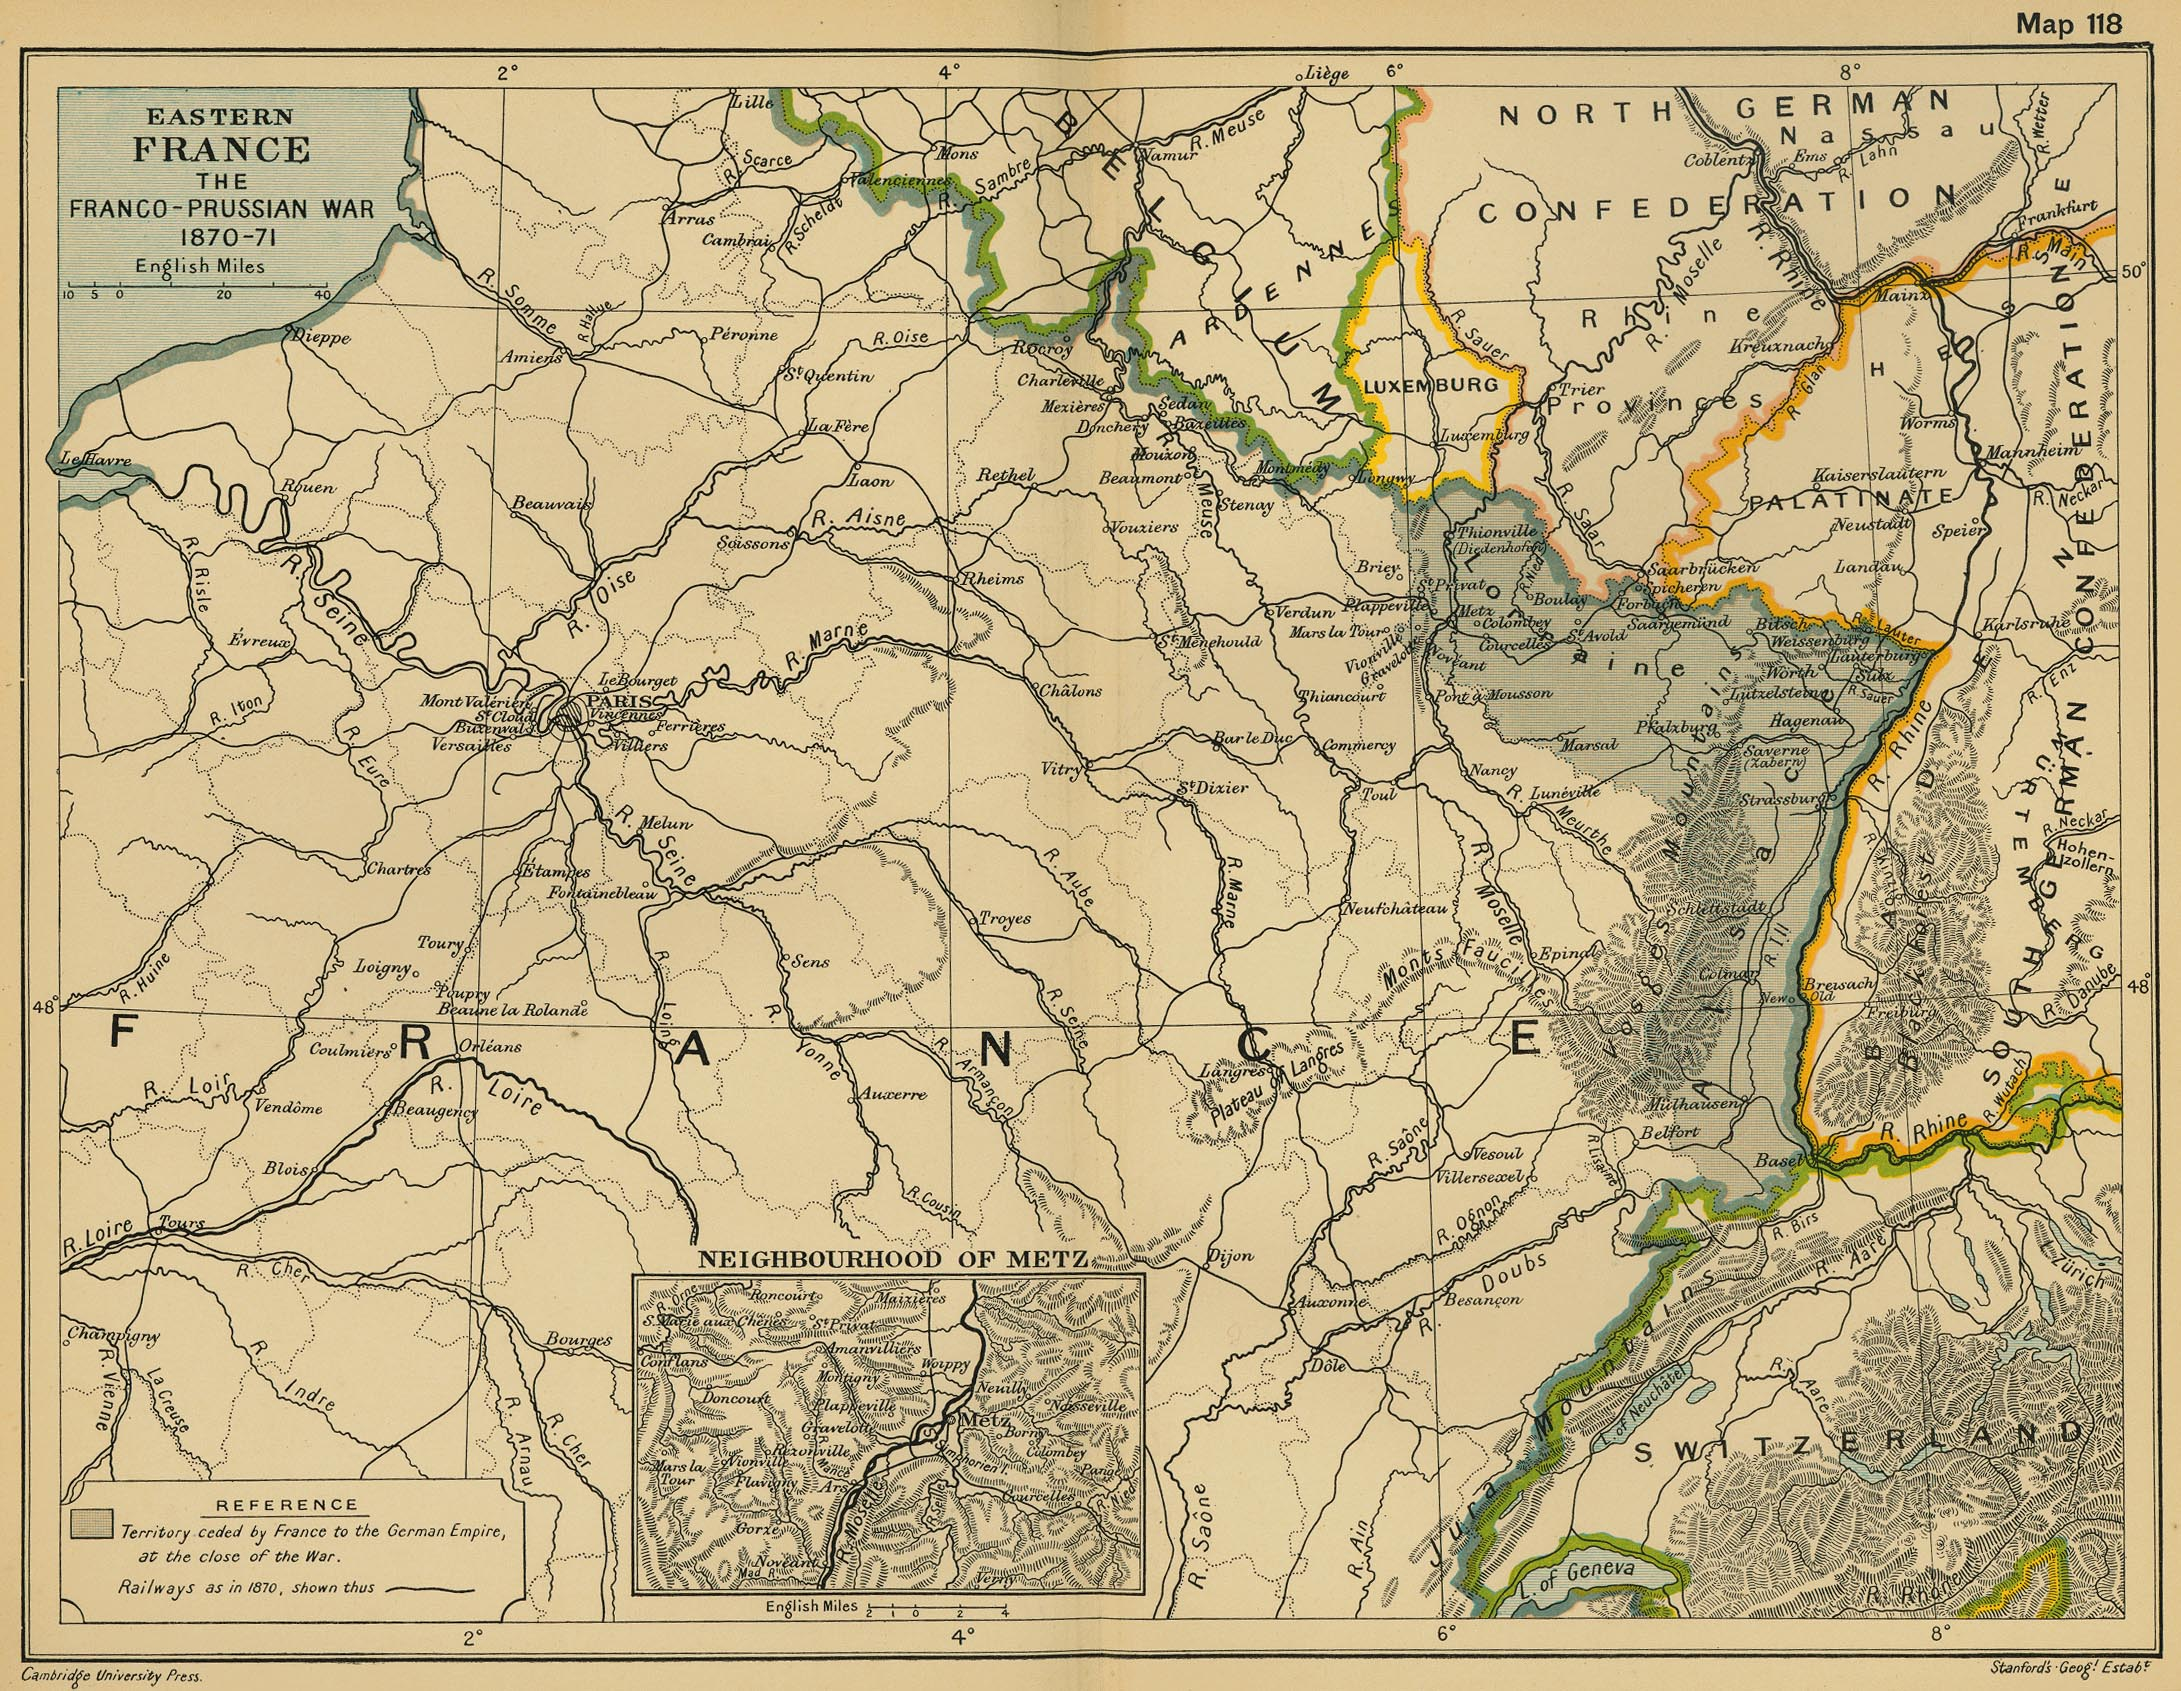 Map of Eastern France: The Franco-Prussian War 1870-1871